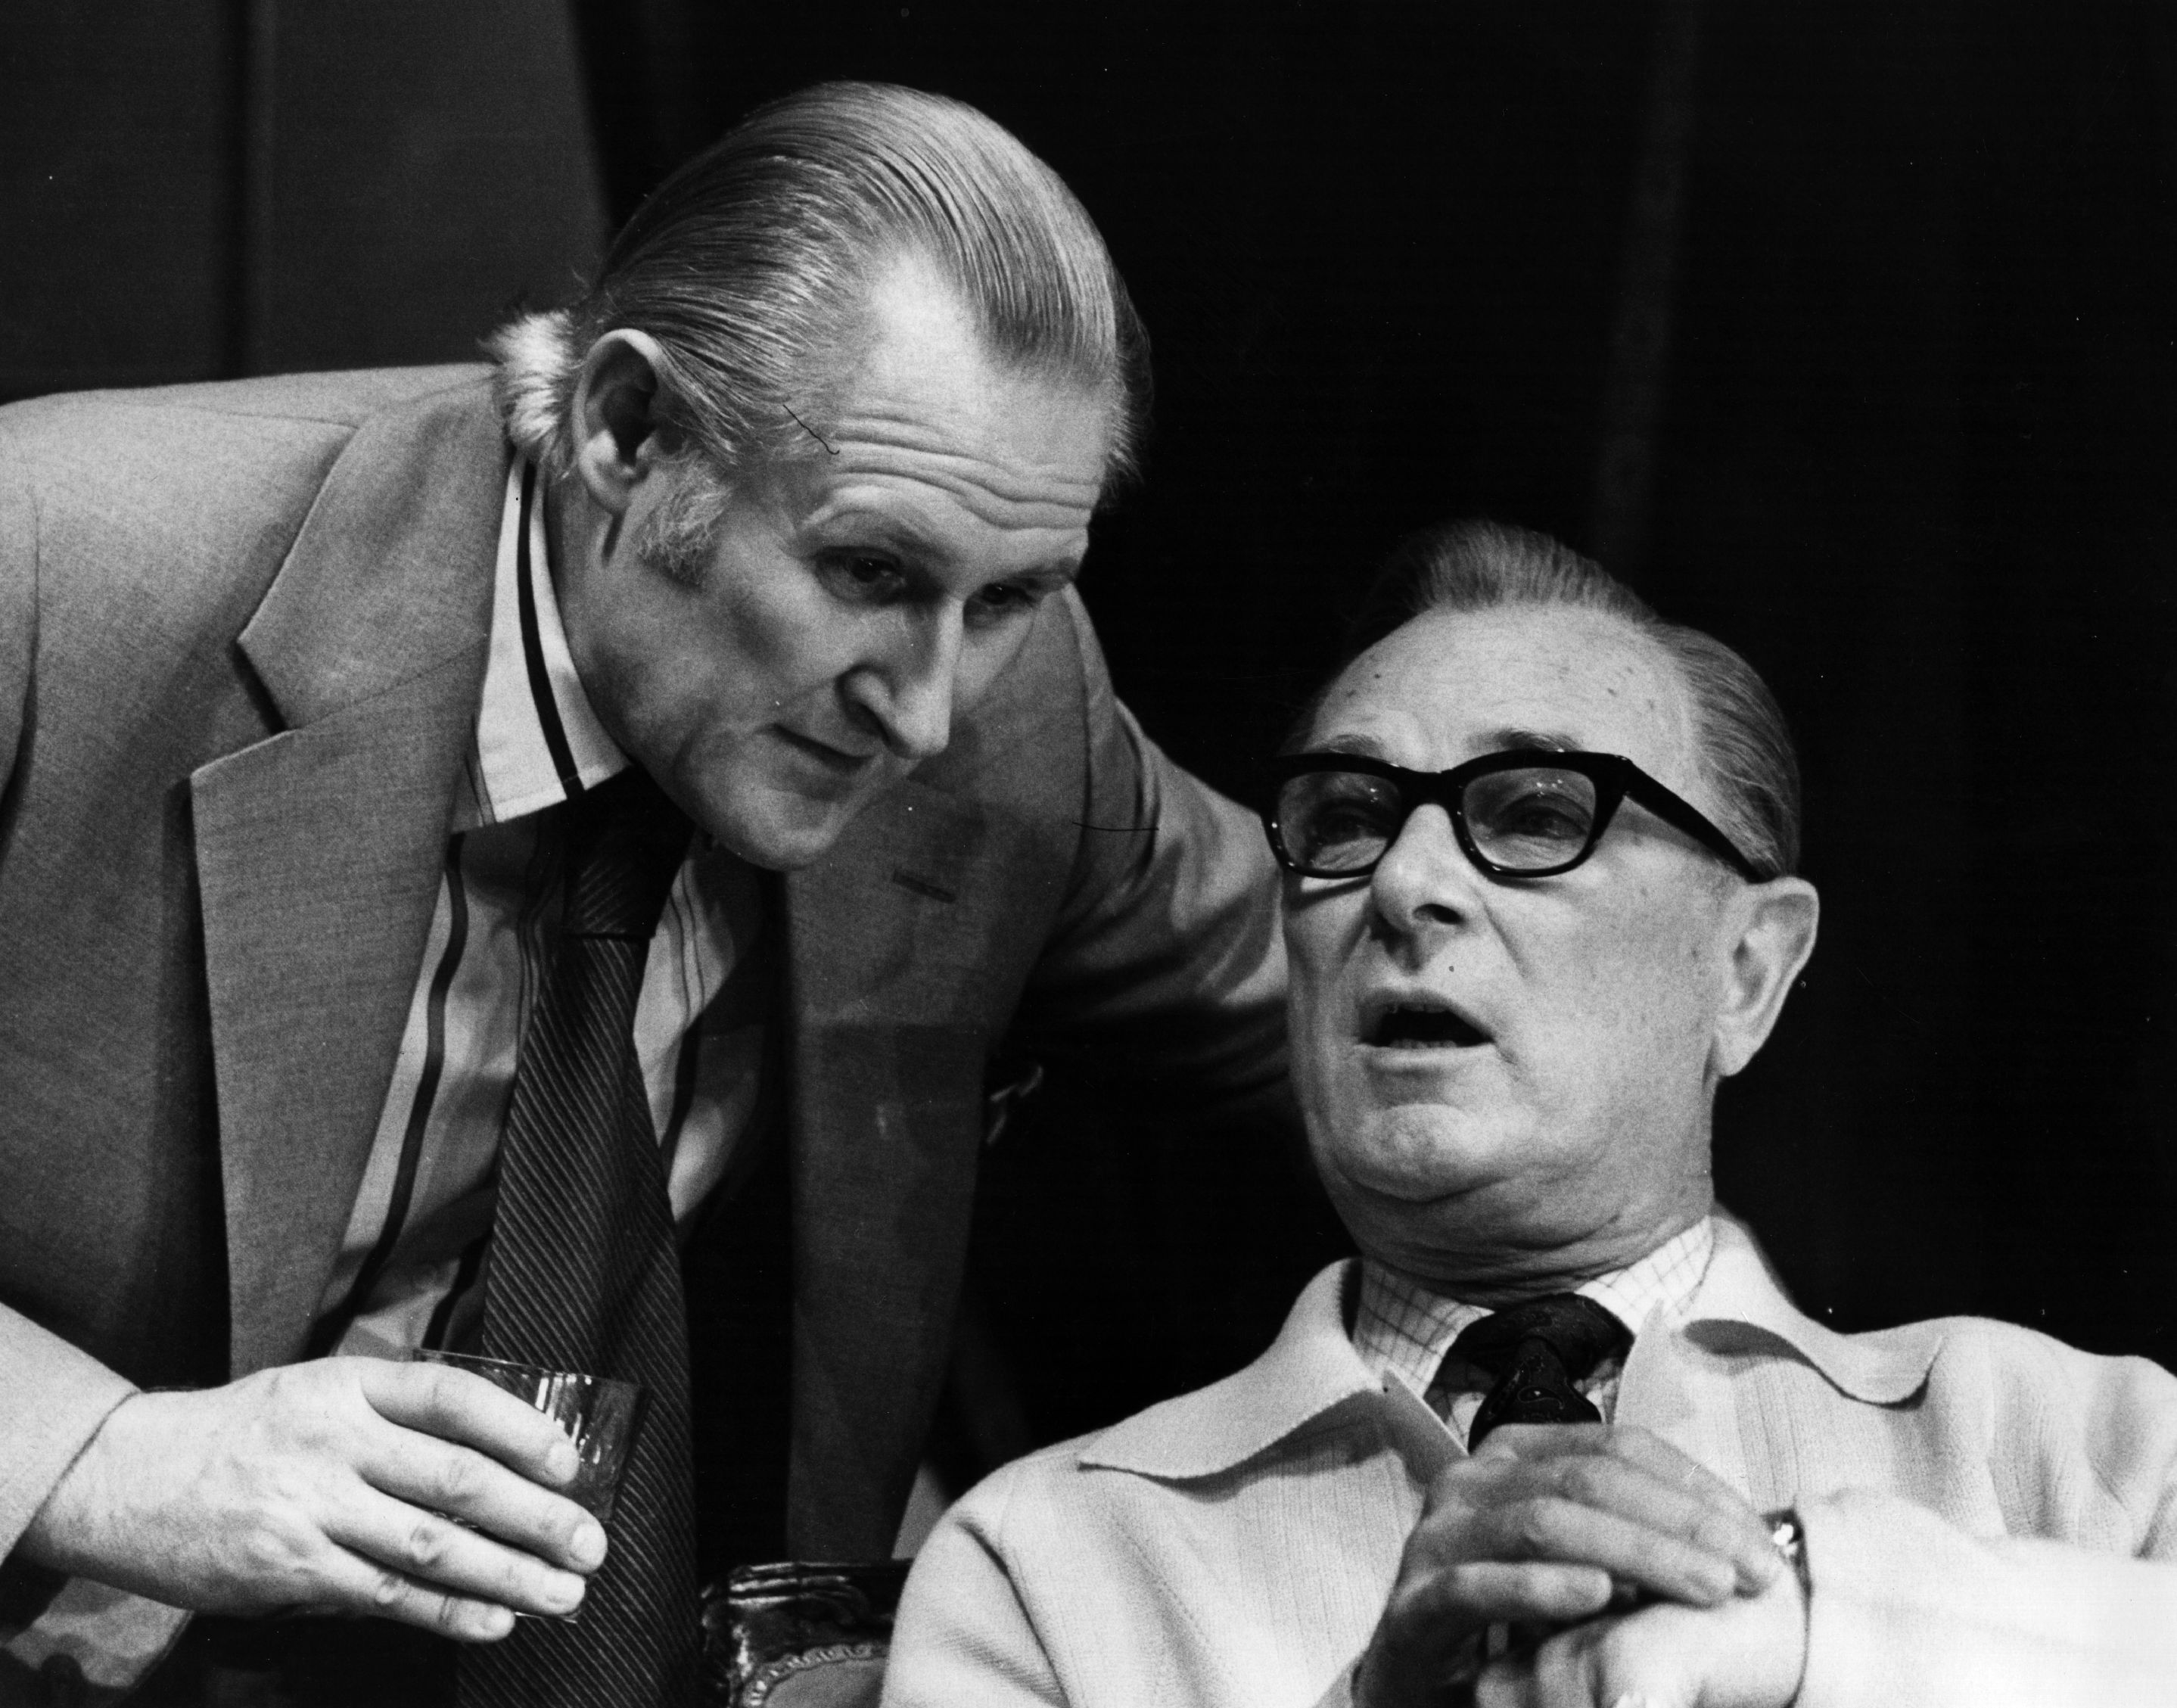 5th November 1974:  British actor Peter Vaughan (left) as Frank Cranfield on stage during rehearsals for 'The Pay Off', a thriller by William Fairchild.  Photo by Central Press/Getty Images